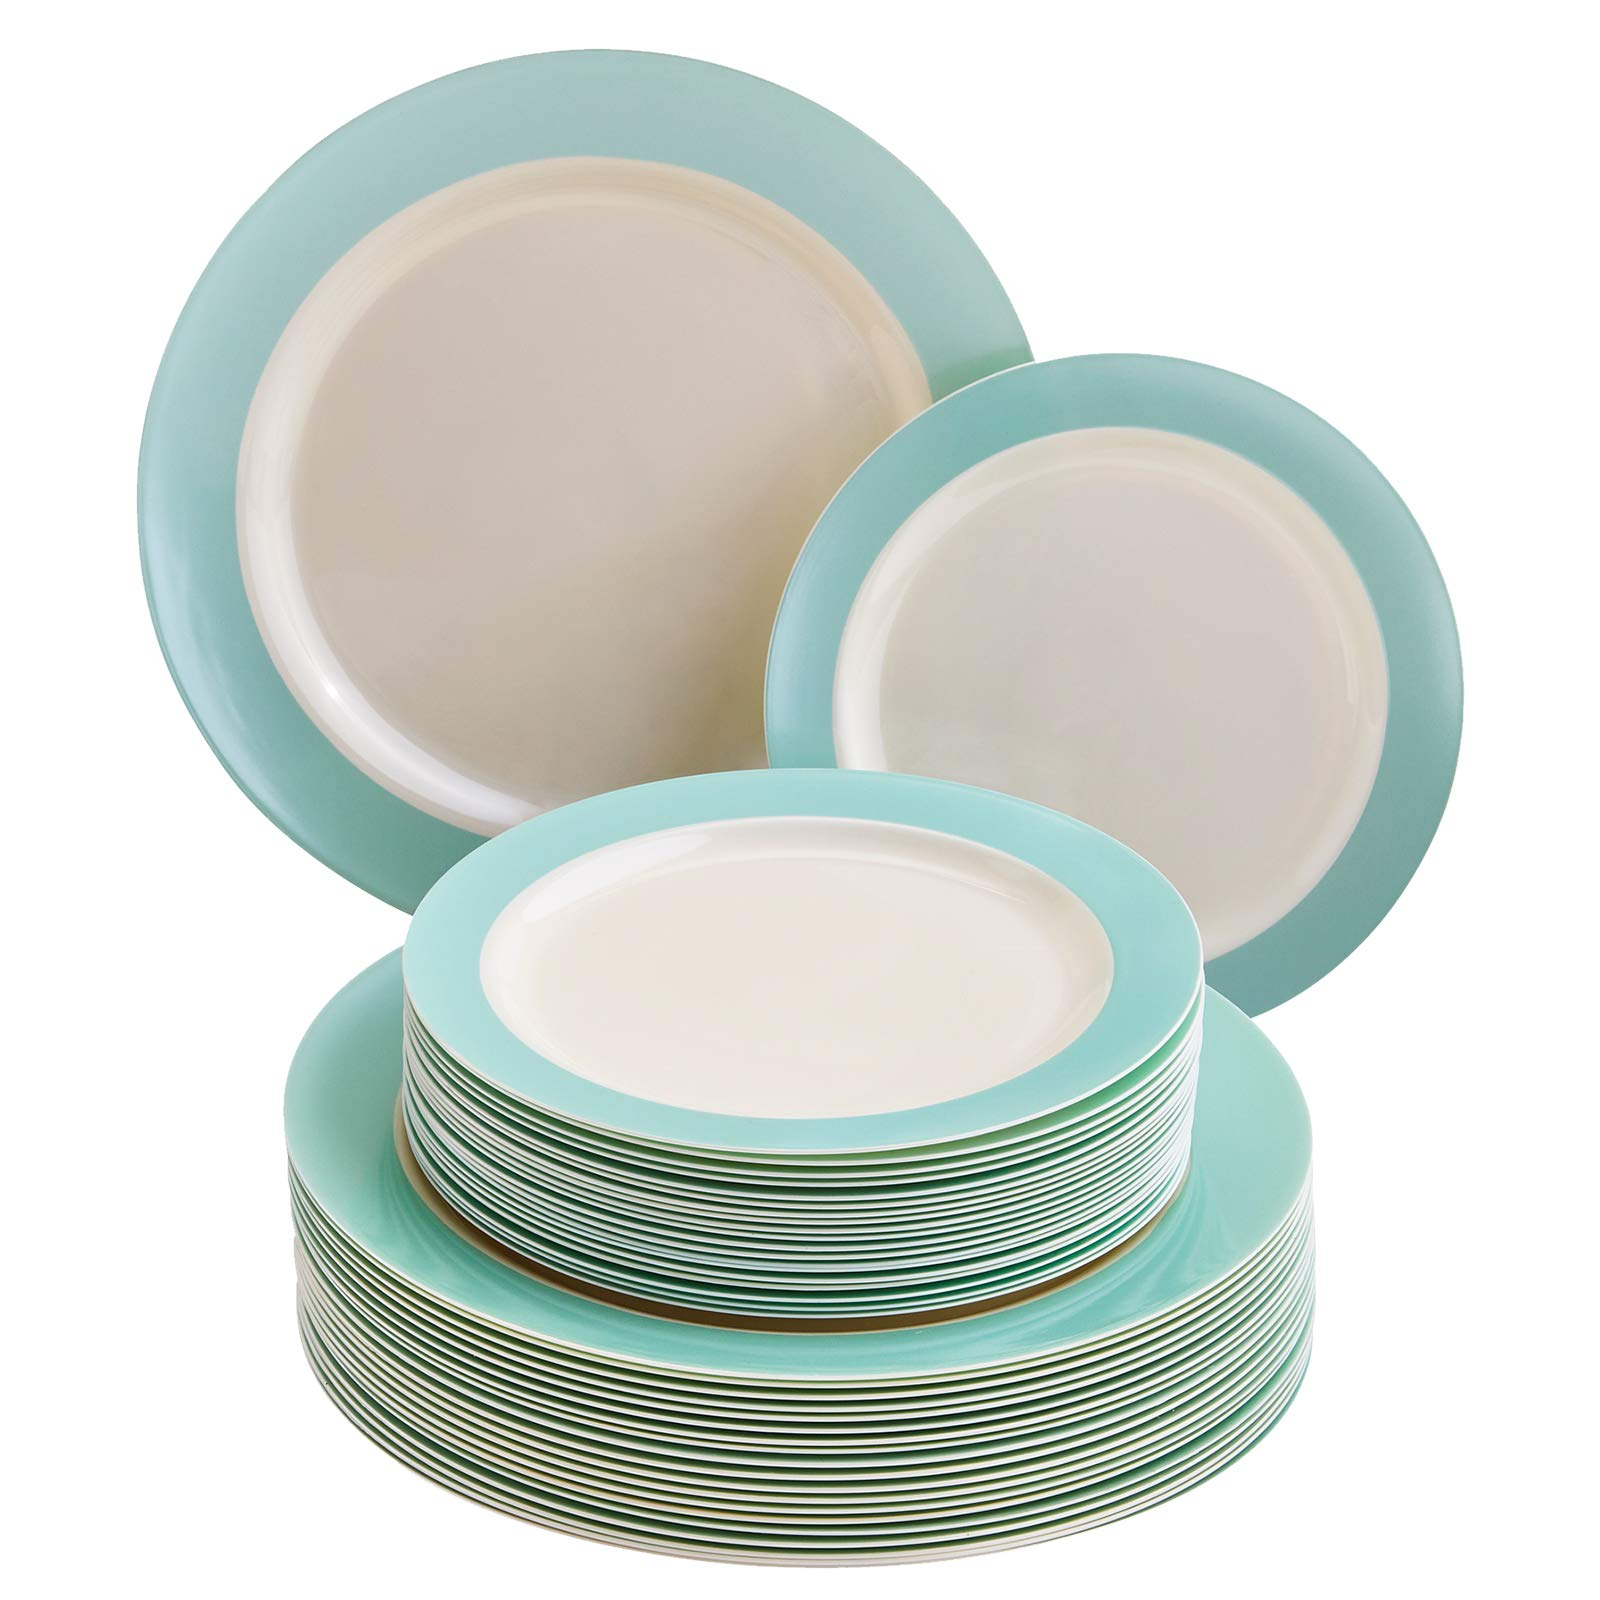 DISPOSABLE 40 PC DINNERWARE SET   20 Dinner Plates   20 Salad Plates   Heavy Duty Plastic Dishes   Elegant Fine China Look   Pastel Collection (Turquoise)